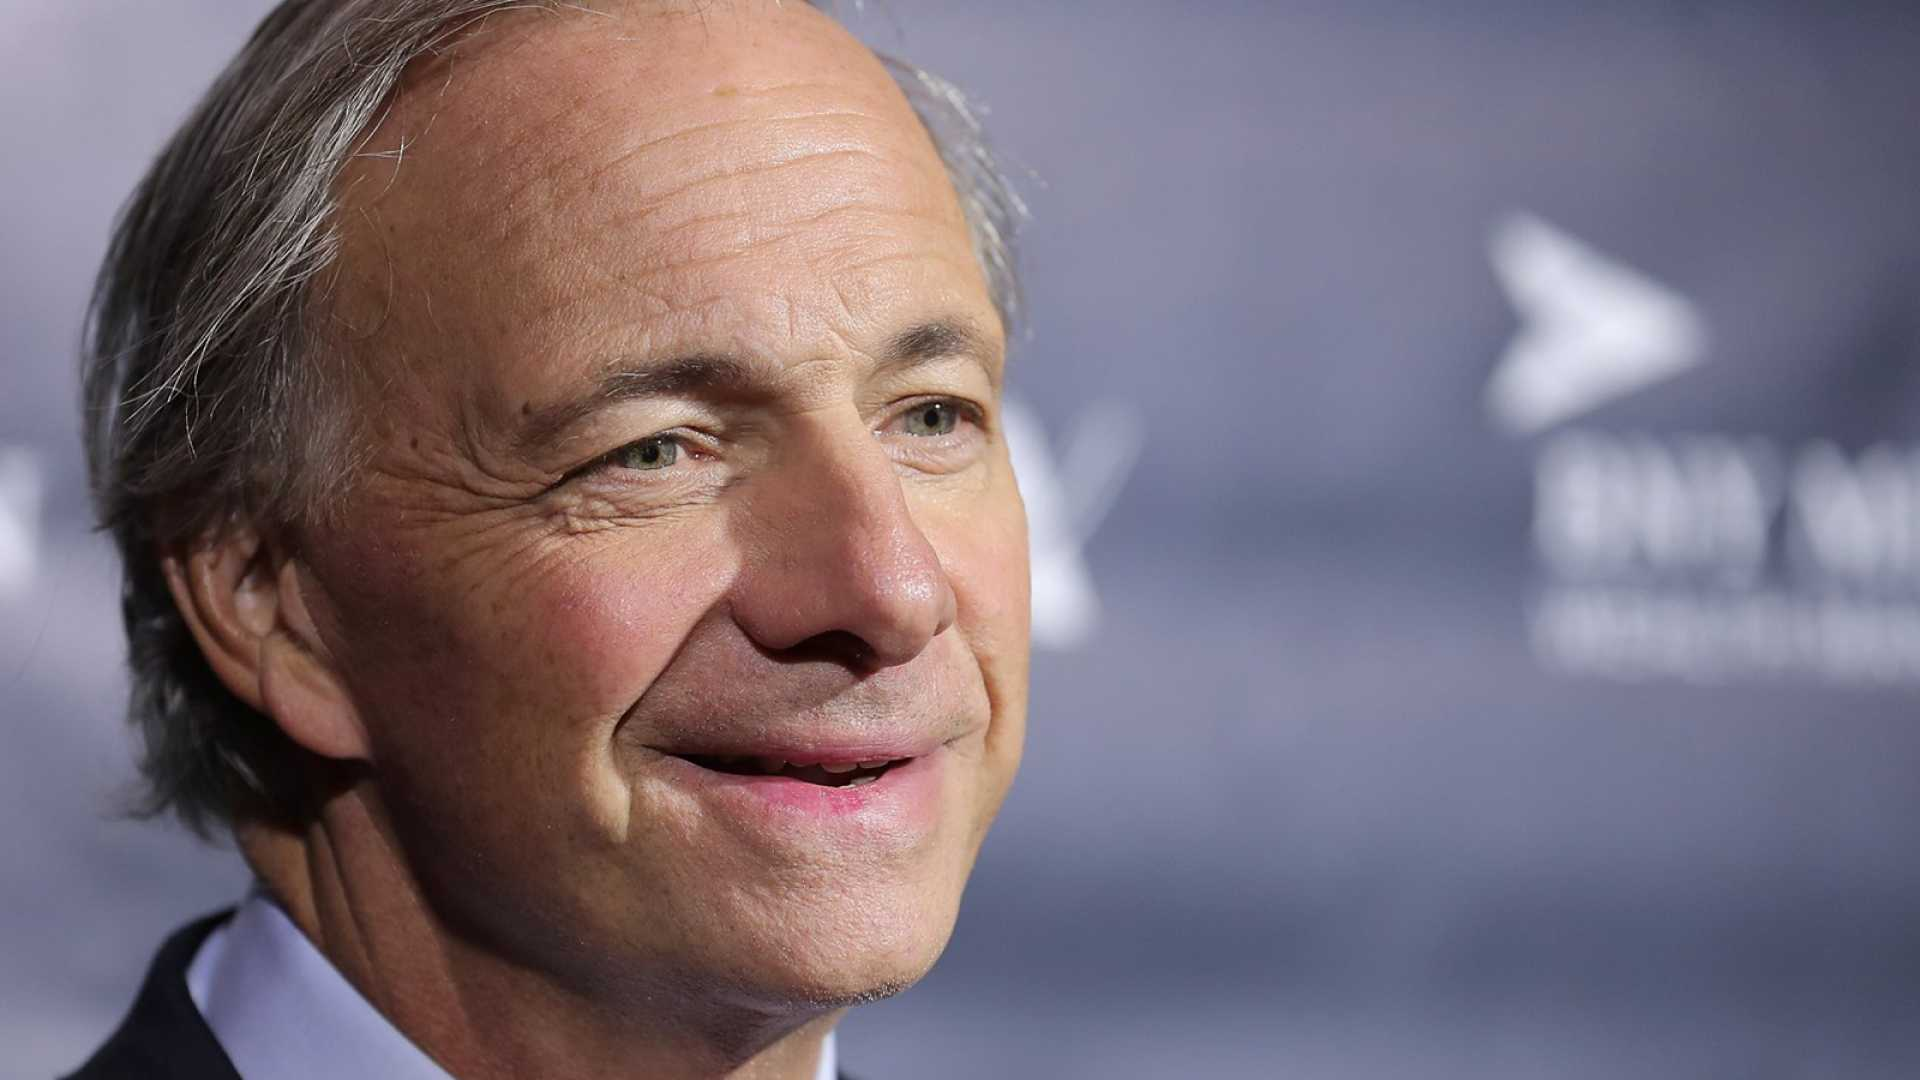 Use Self-Made Billionaire Ray Dalio's 2-Minute Rule to Radically Improve Your Meetings